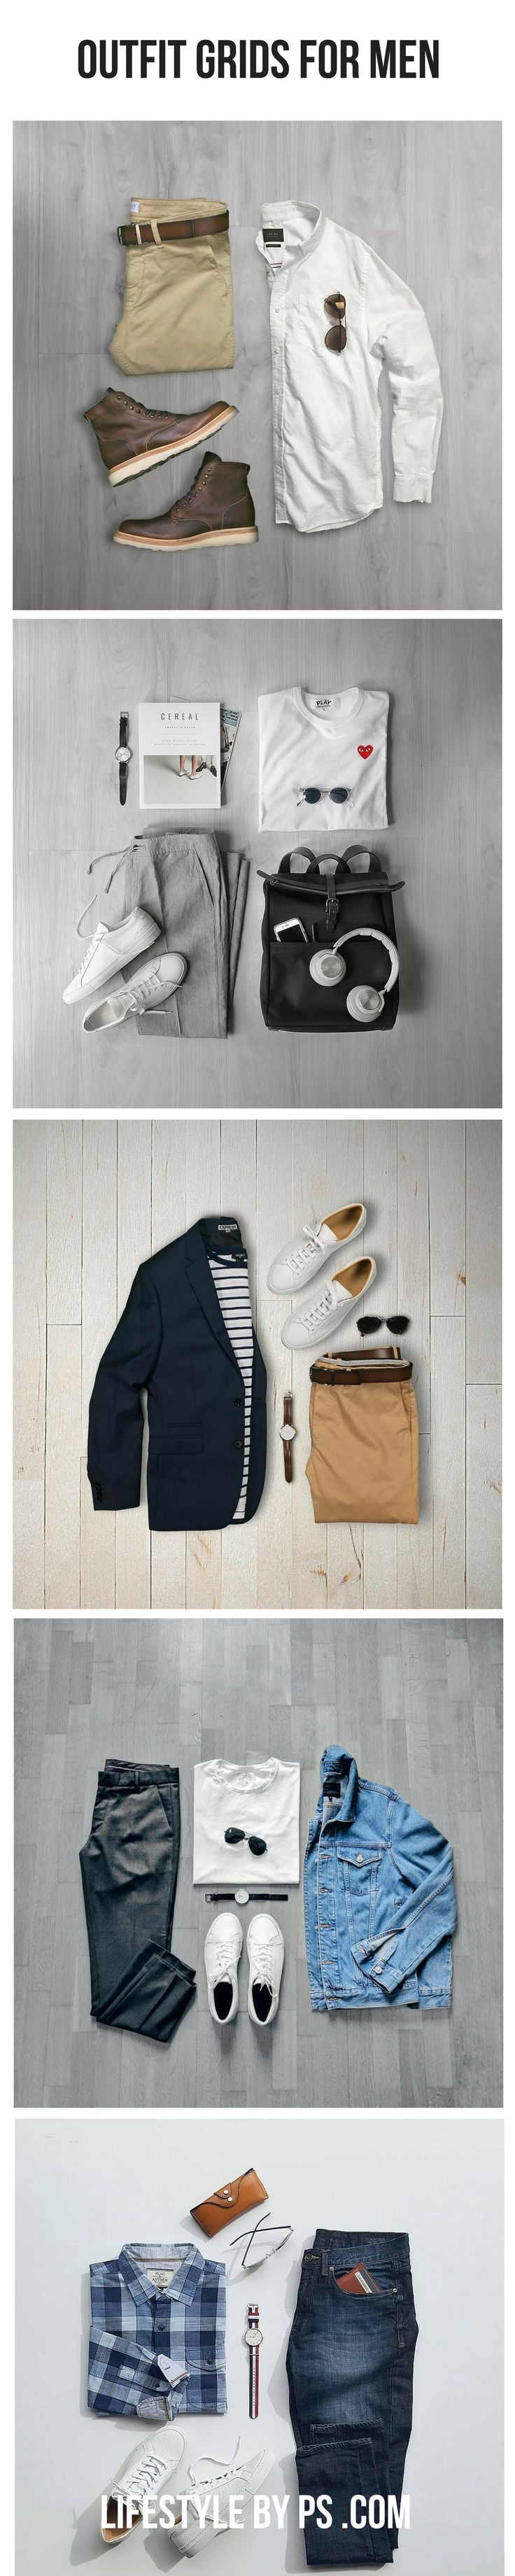 Awesome Outfit Grids For Men. - Tap the link to shop on our official online store! You can also join our affiliate and/or rewards programs for FREE!